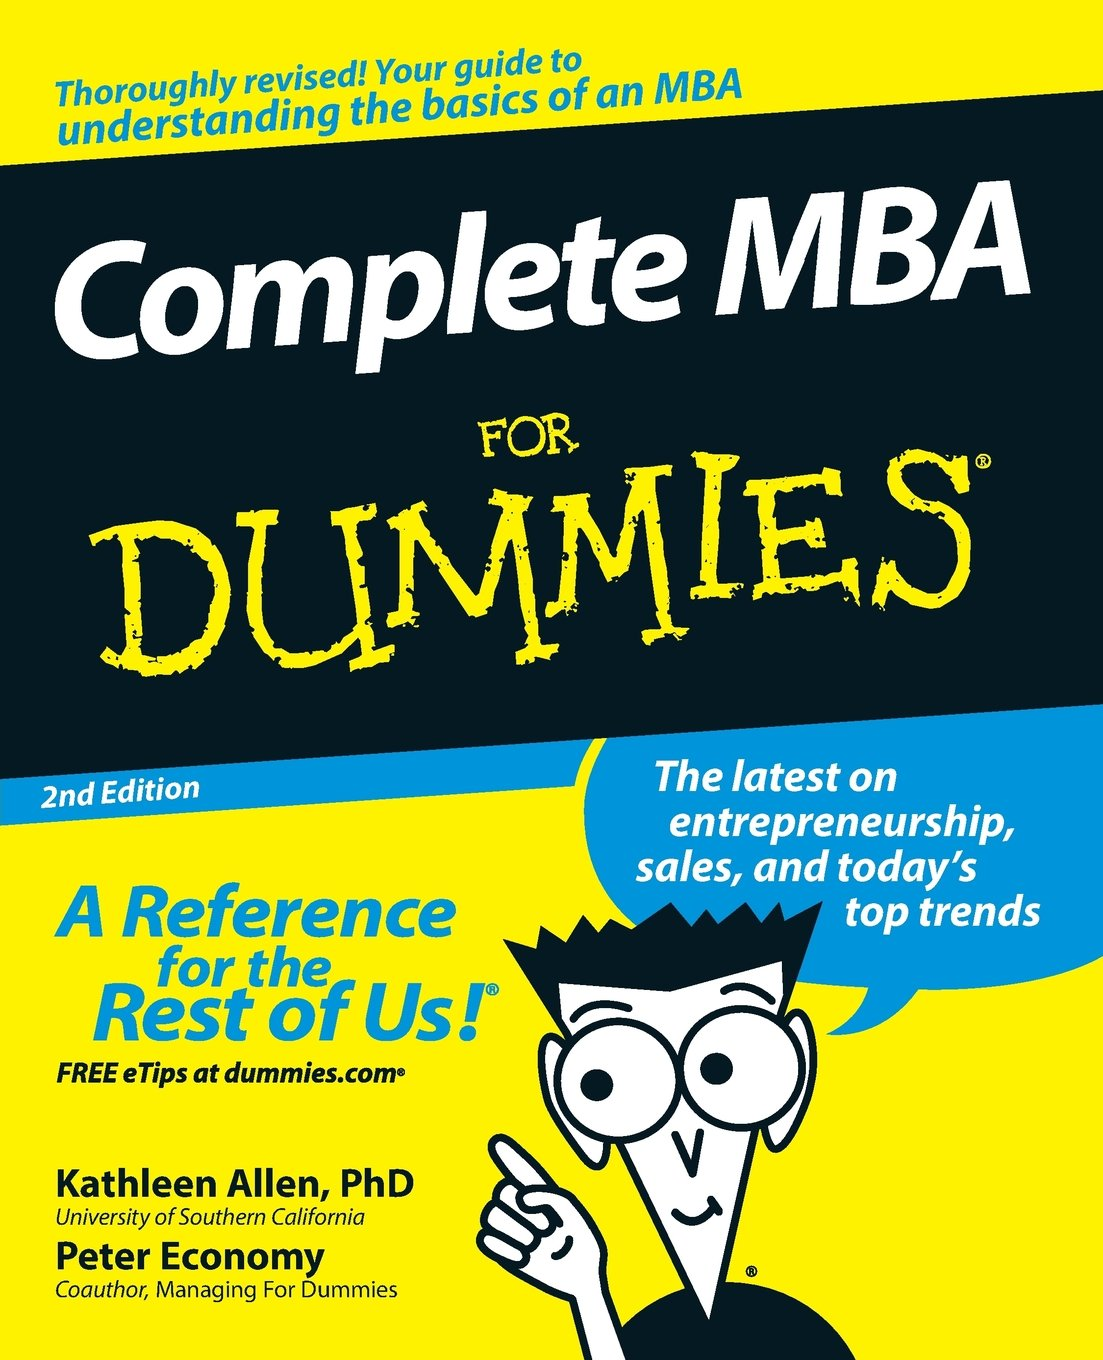 Complete MBA For Dummies: Kathleen Allen, Peter Economy: 9780470194294:  Amazon.com: Books